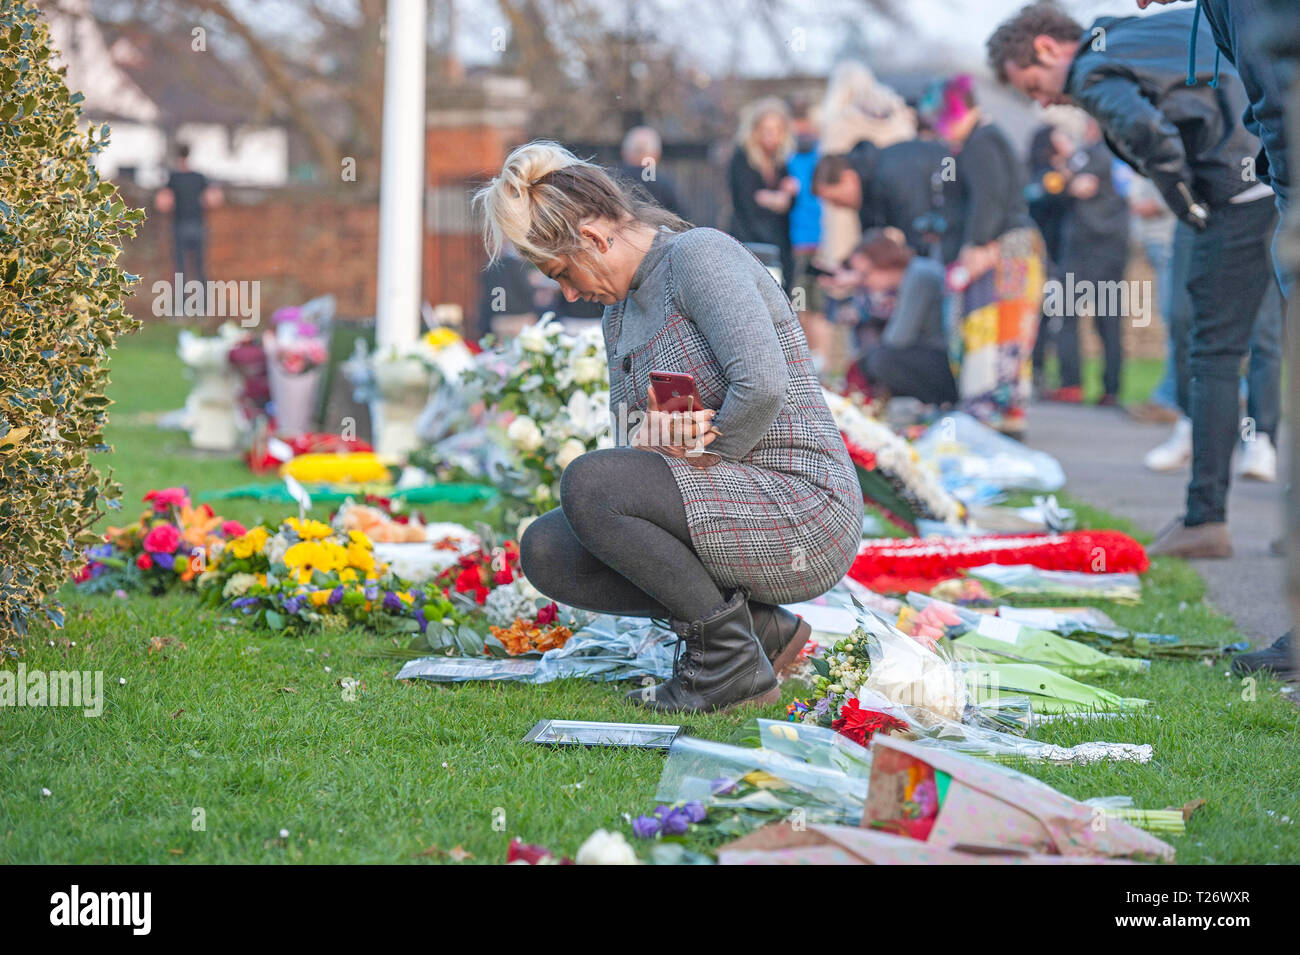 Essex, UK. 30th March 2019. Fans look at the floral tribute in the church grounds after the funeral of the late  Prodigy singer Keith Flint at St Marys Church in Bocking,  Essex today. Credit: Phil Rees/Alamy Live News - Stock Image